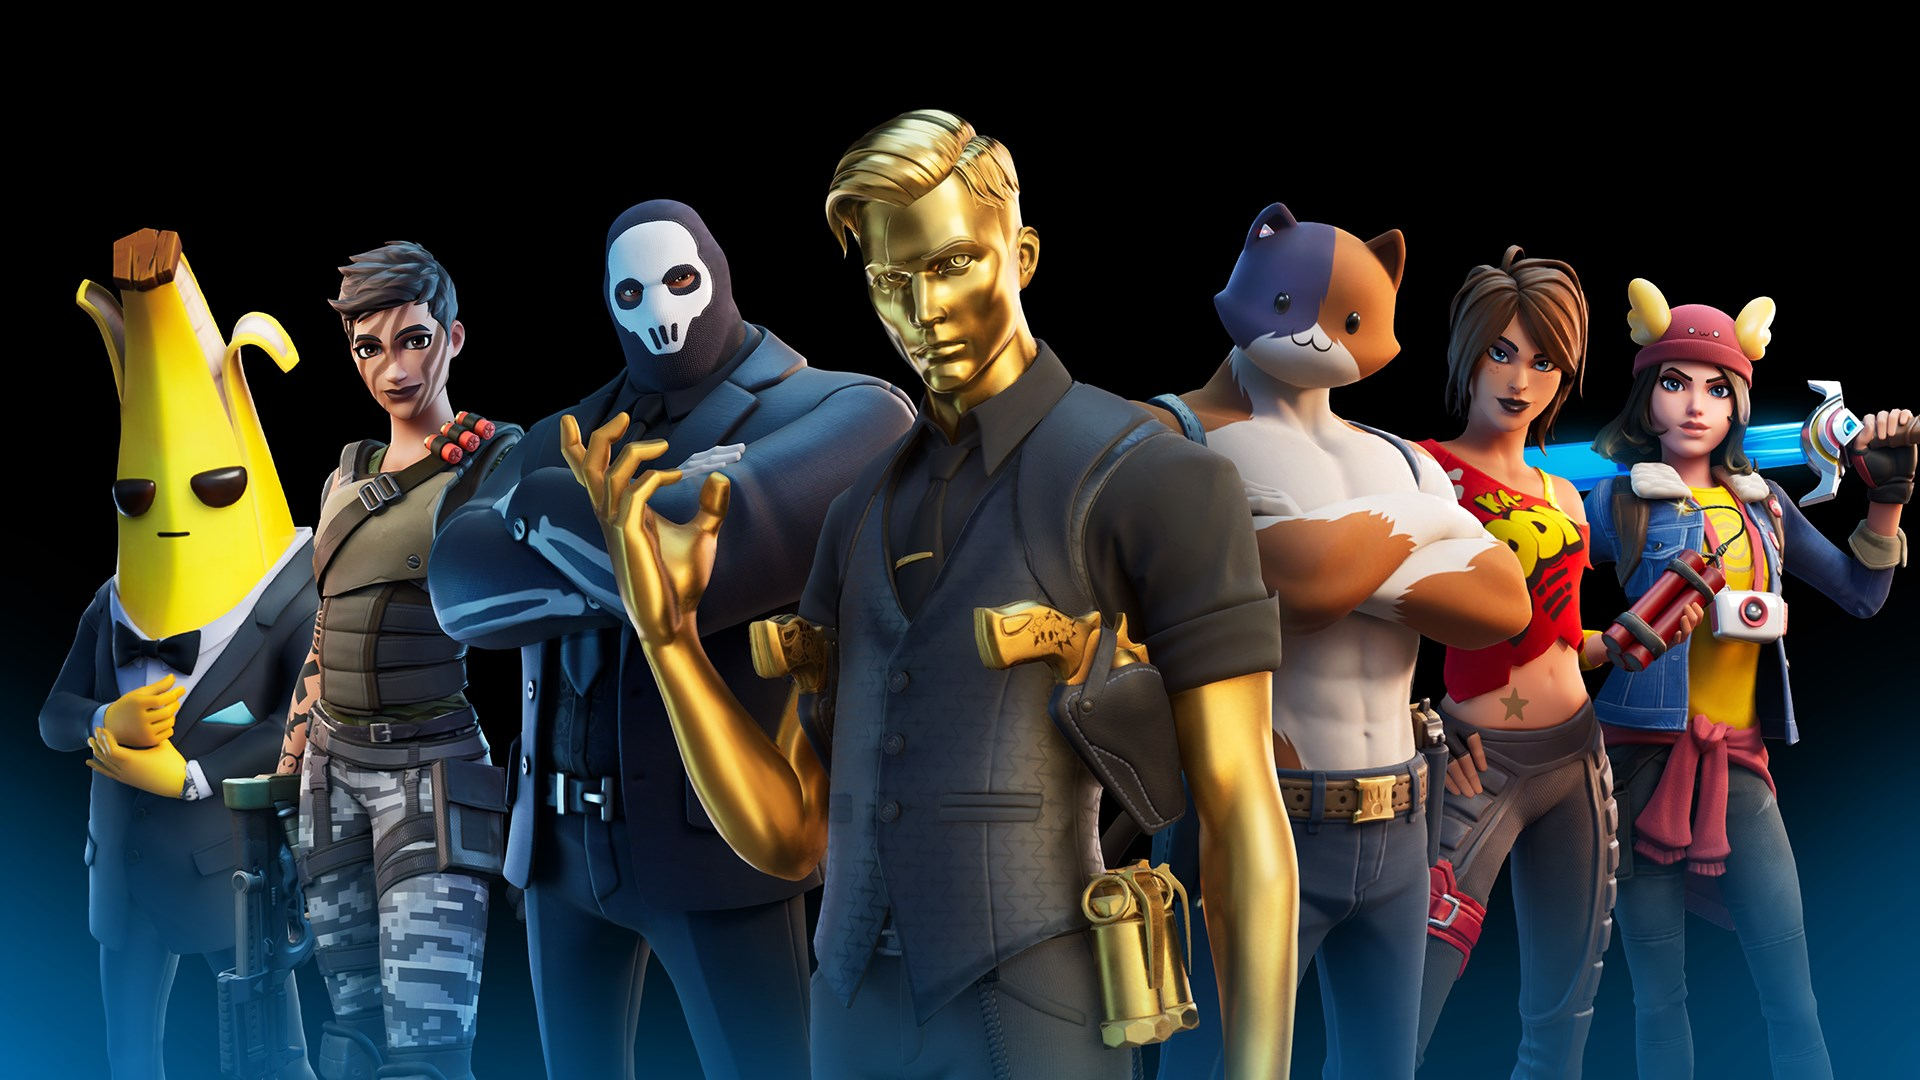 fortnite update 2.68 patch notes